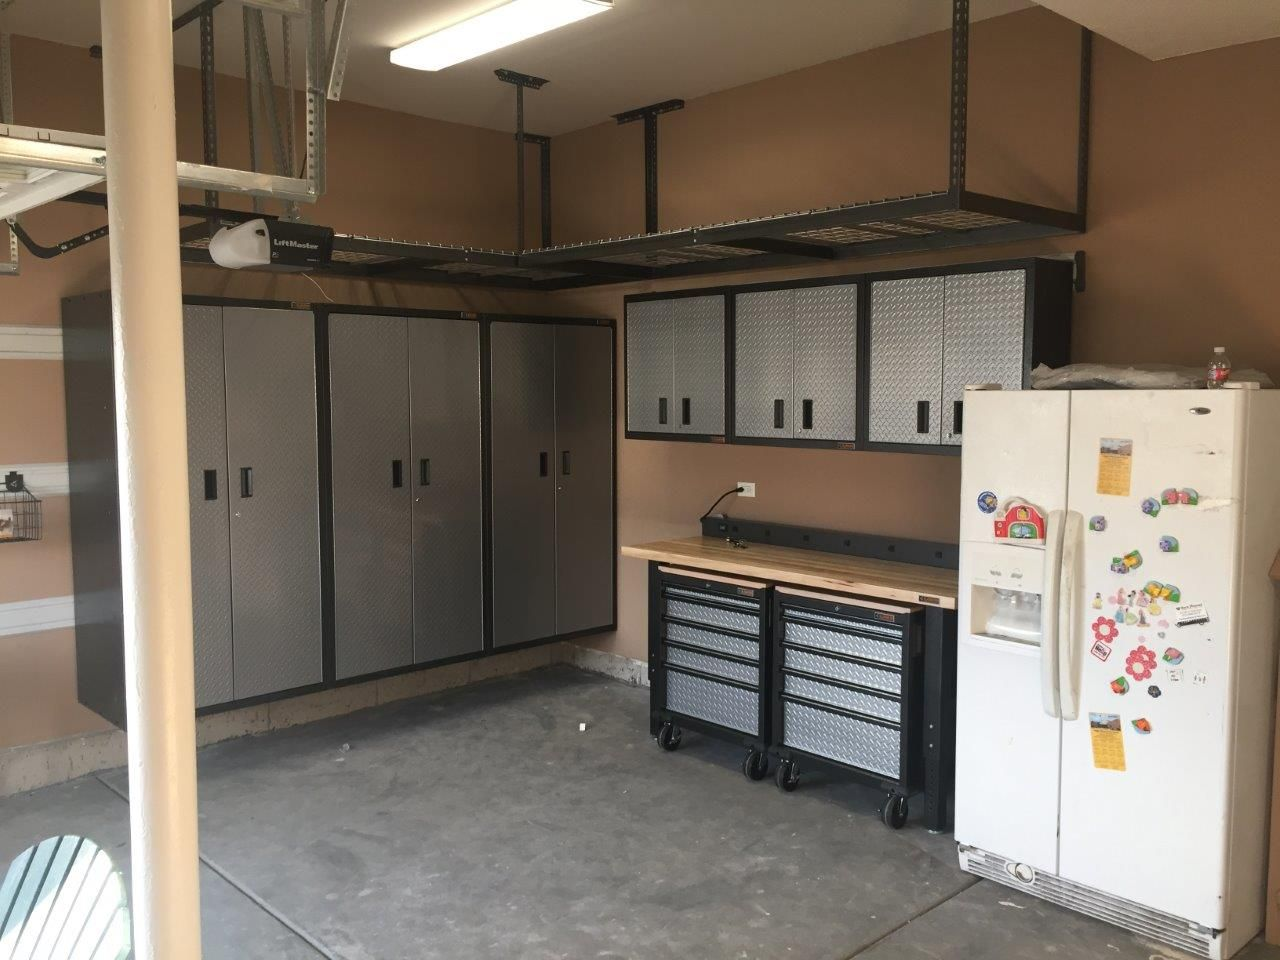 New Garage Set Up   Gladiator Cabinets, Drawers And Several Overhead  Storage Racks To Free Up That Floor Space!